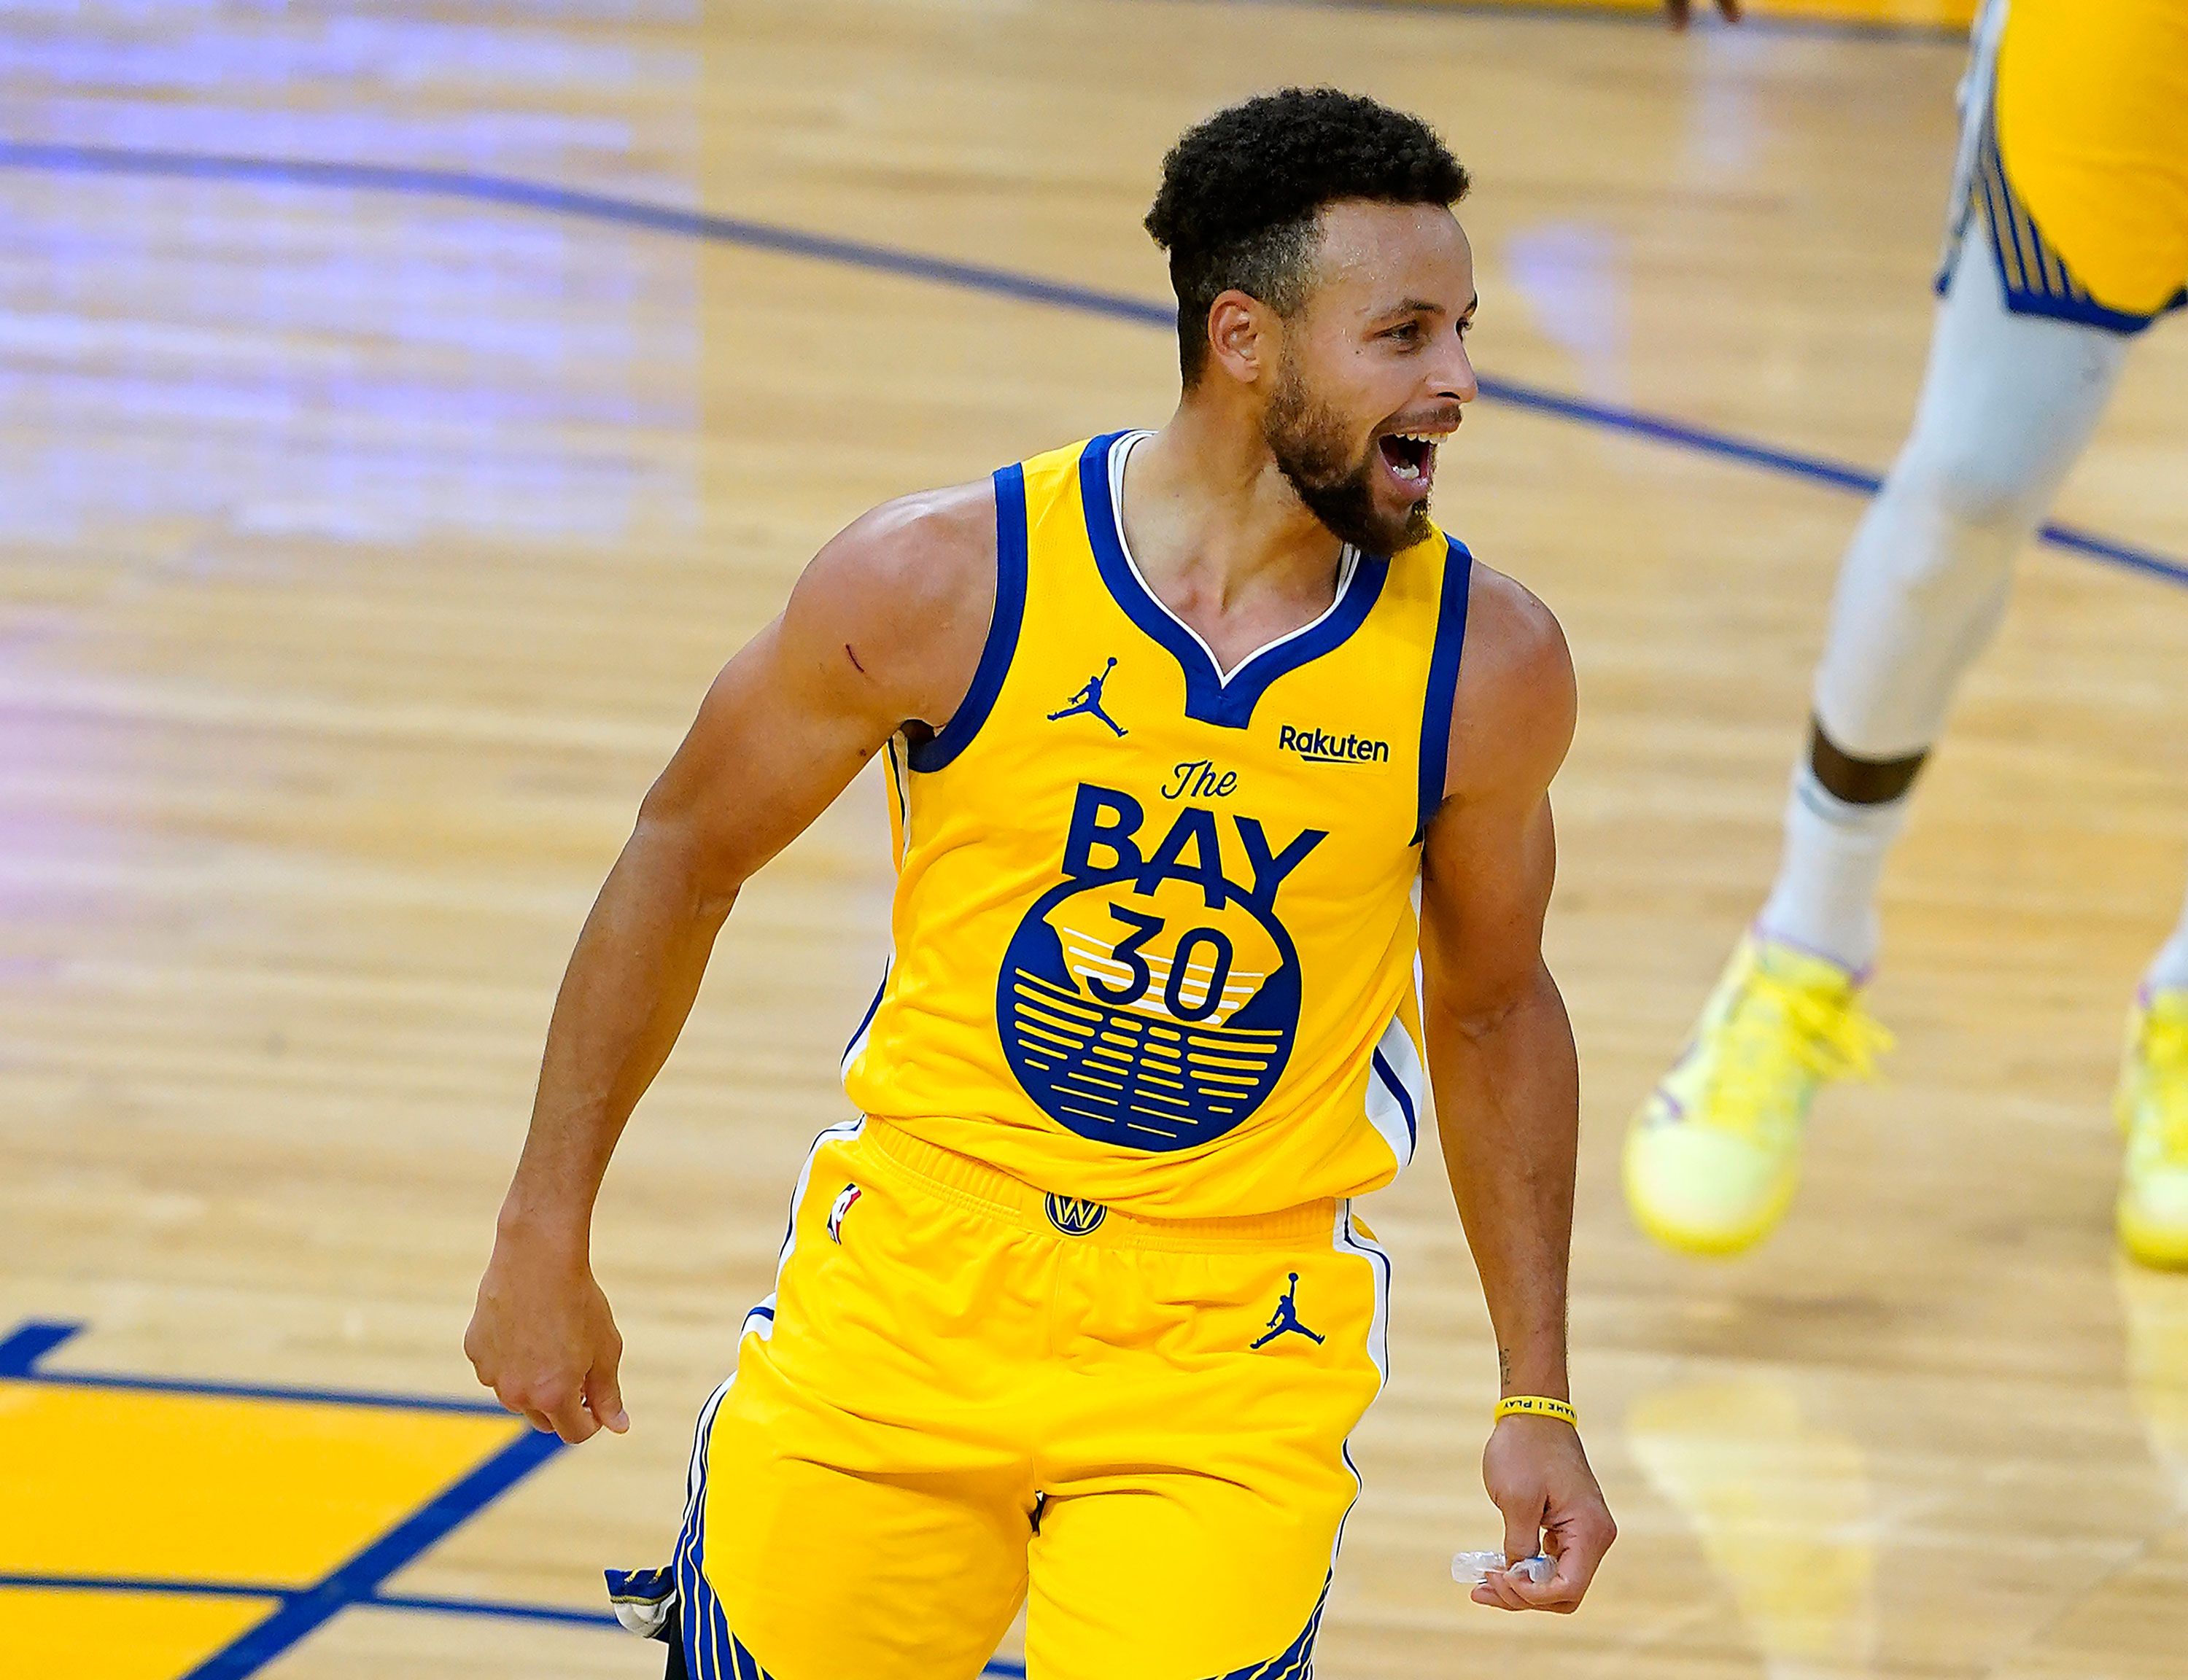 Steph Curry scores career-high 62 points in Golden State Warriors victory